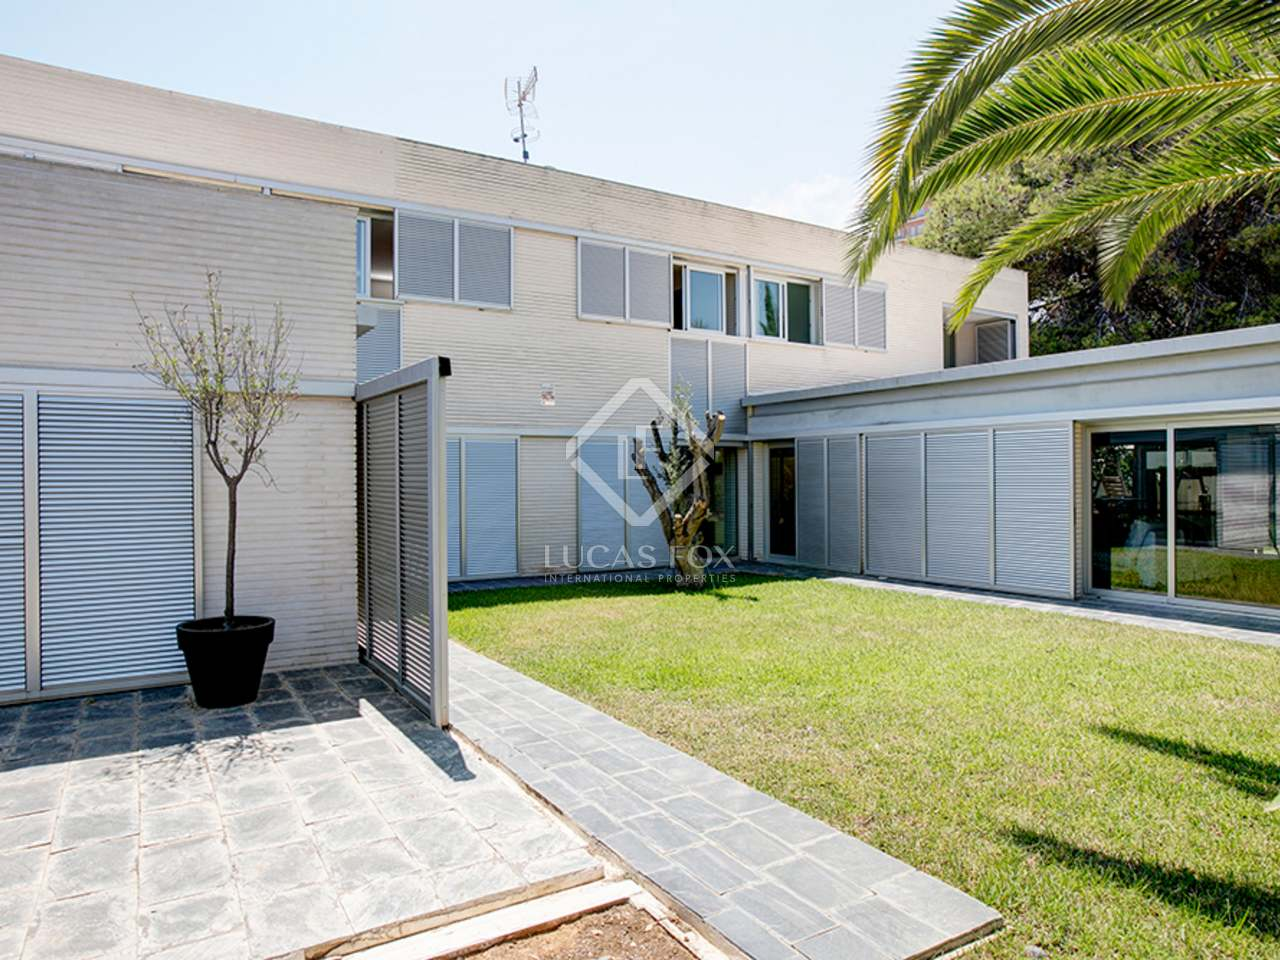 349 M 178 House With 80 M 178 Terrace For Sale In D 233 Nia